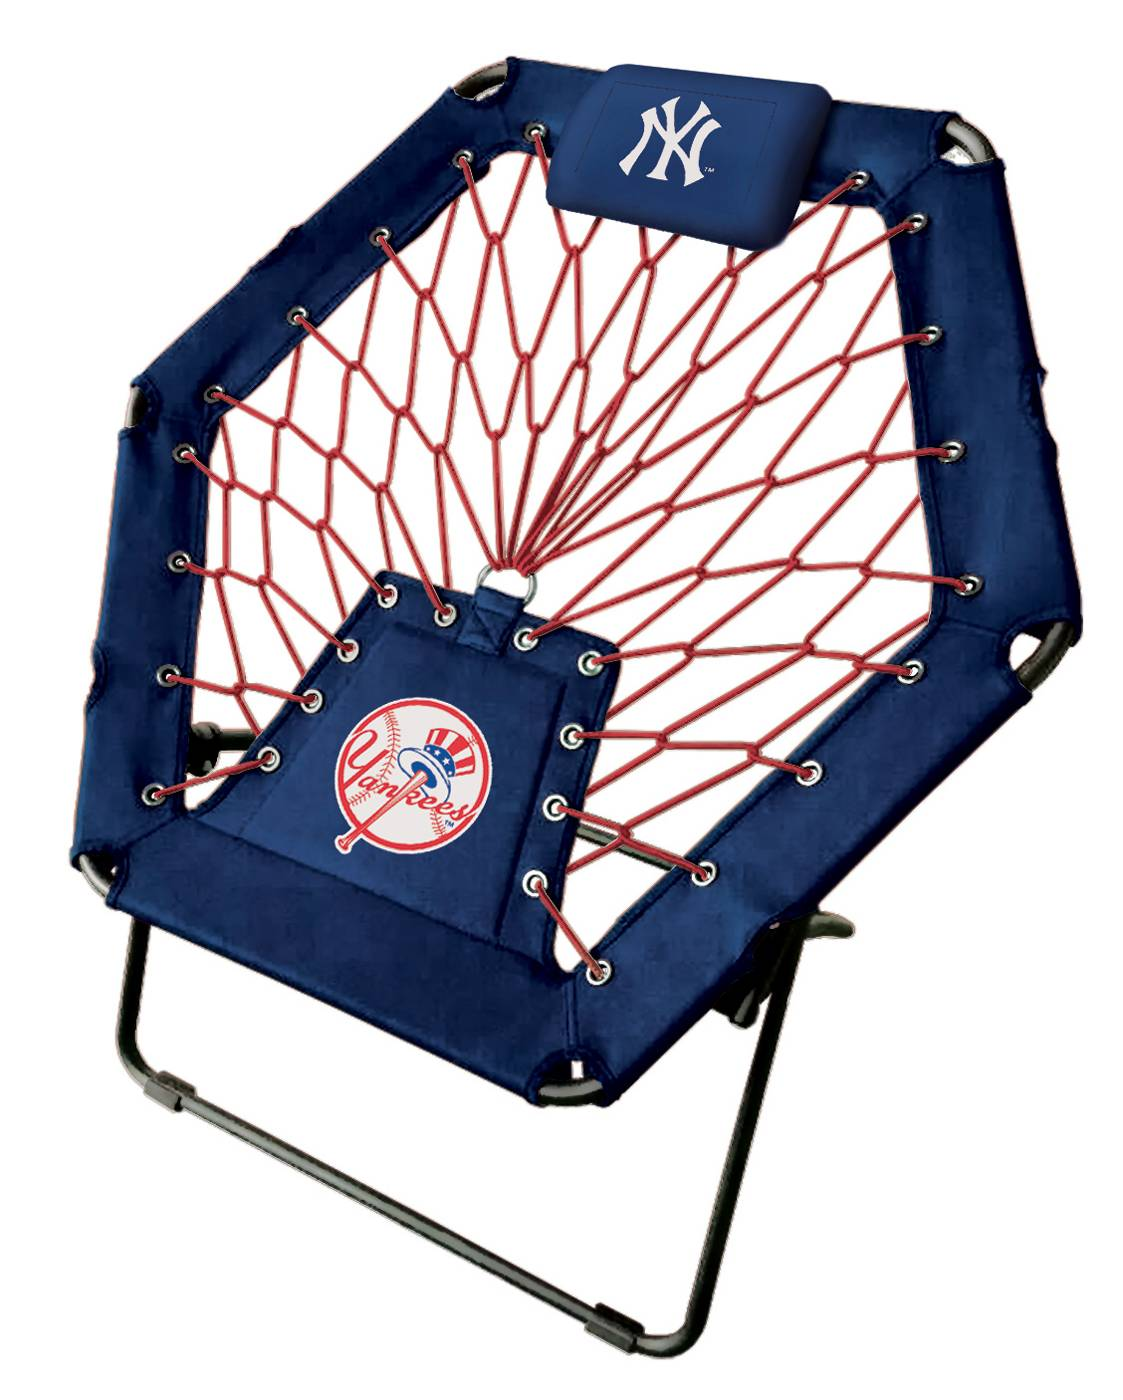 Superbe Great For Lounging Or Watching The Game, The New York Yankees Premium  Bungee Chair Is A Great Addition To The Fan Cave Or Dorm Room.